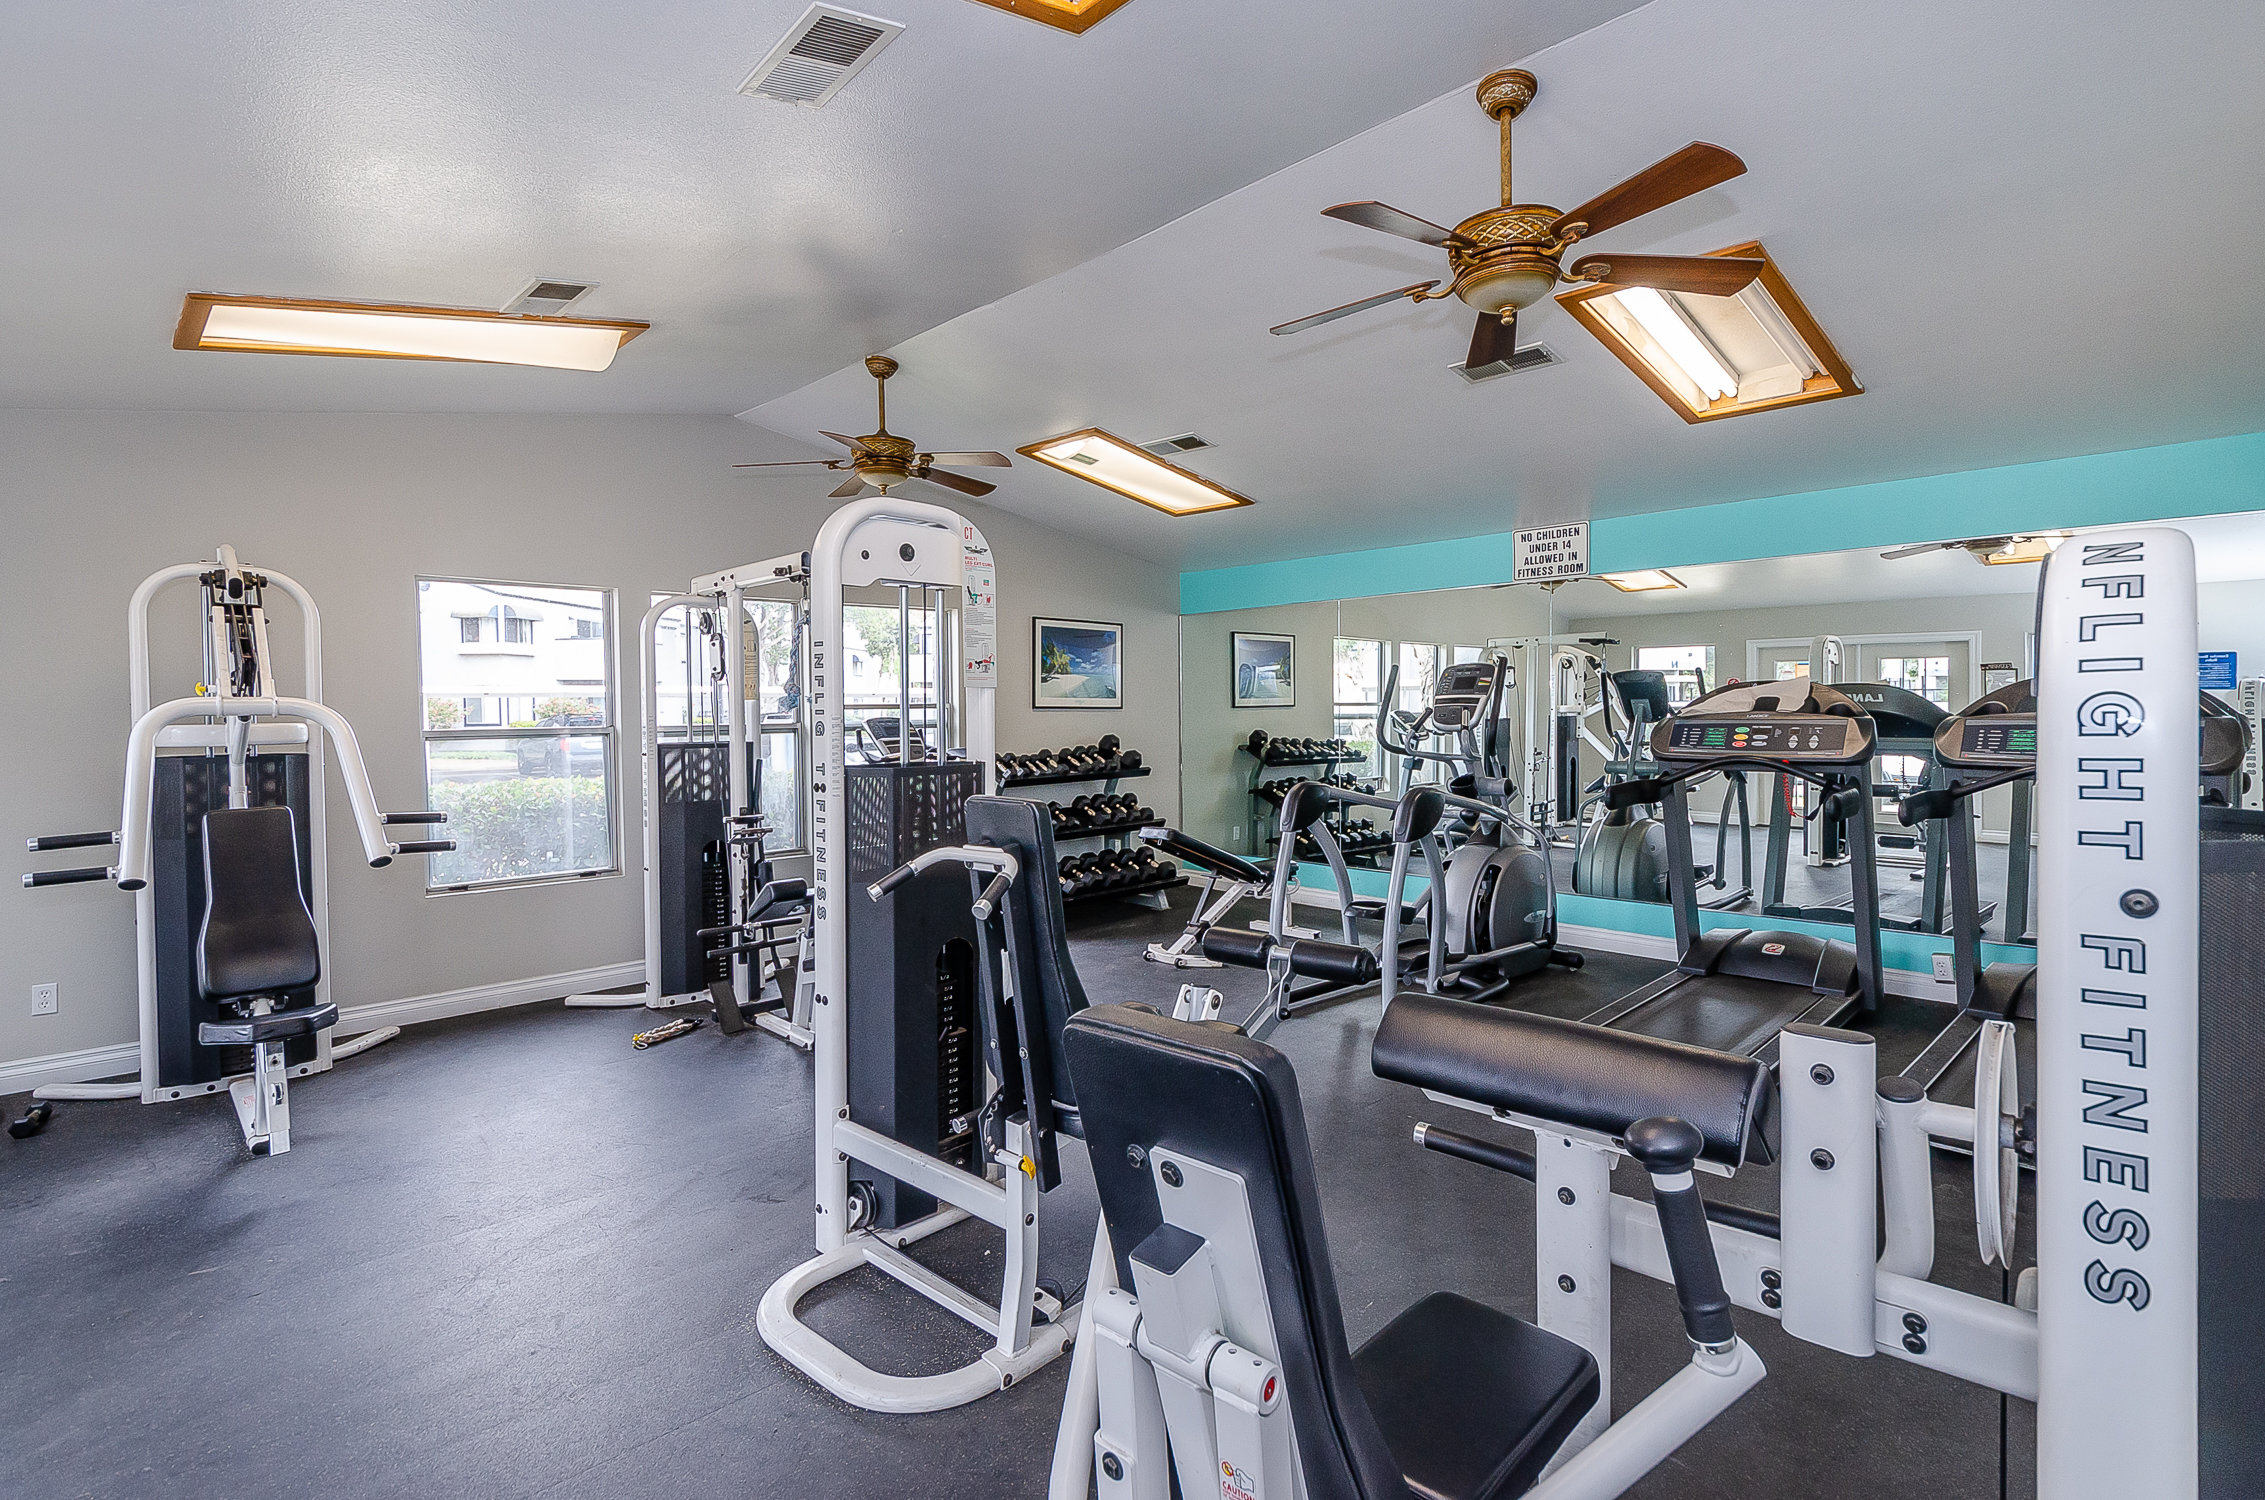 fitness room with mirrors, windows, ceiling fans, weight machines, free weights and cardio equipment